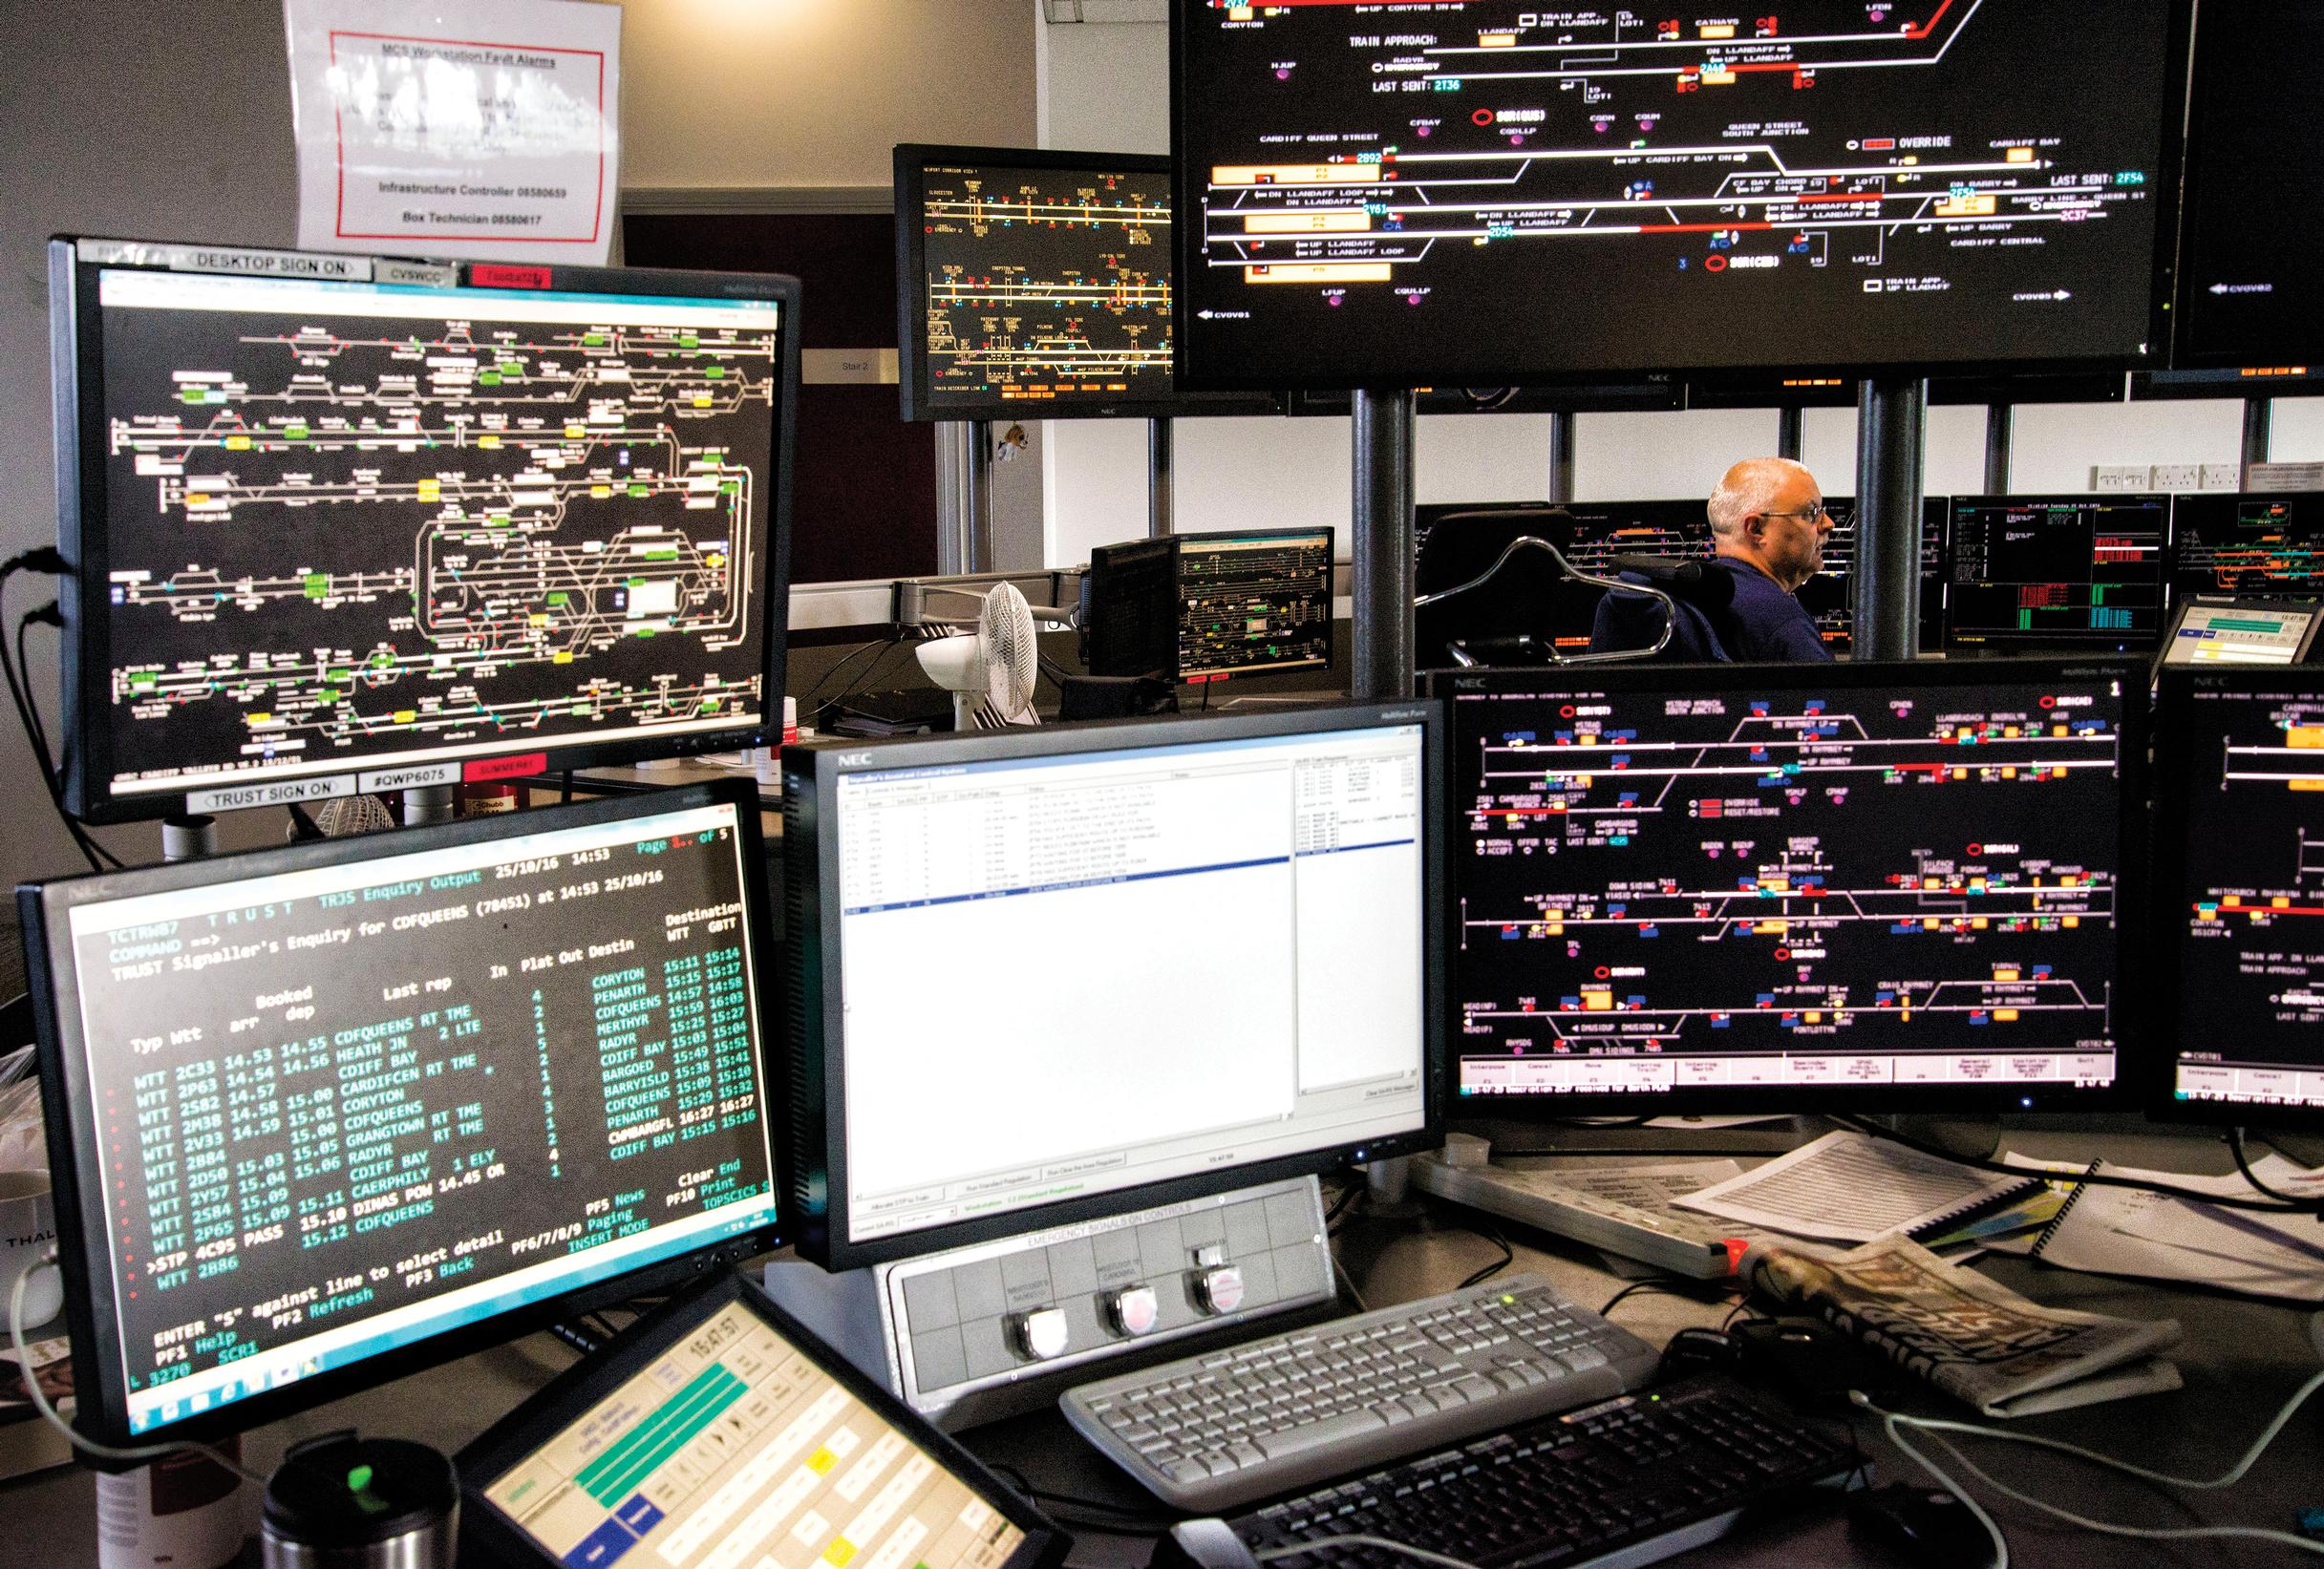 Each of Network Rail's 12 new Rail Operating Centres will control huge chunks of the rail network. NR has taken steps to mitigate the risk of system failures